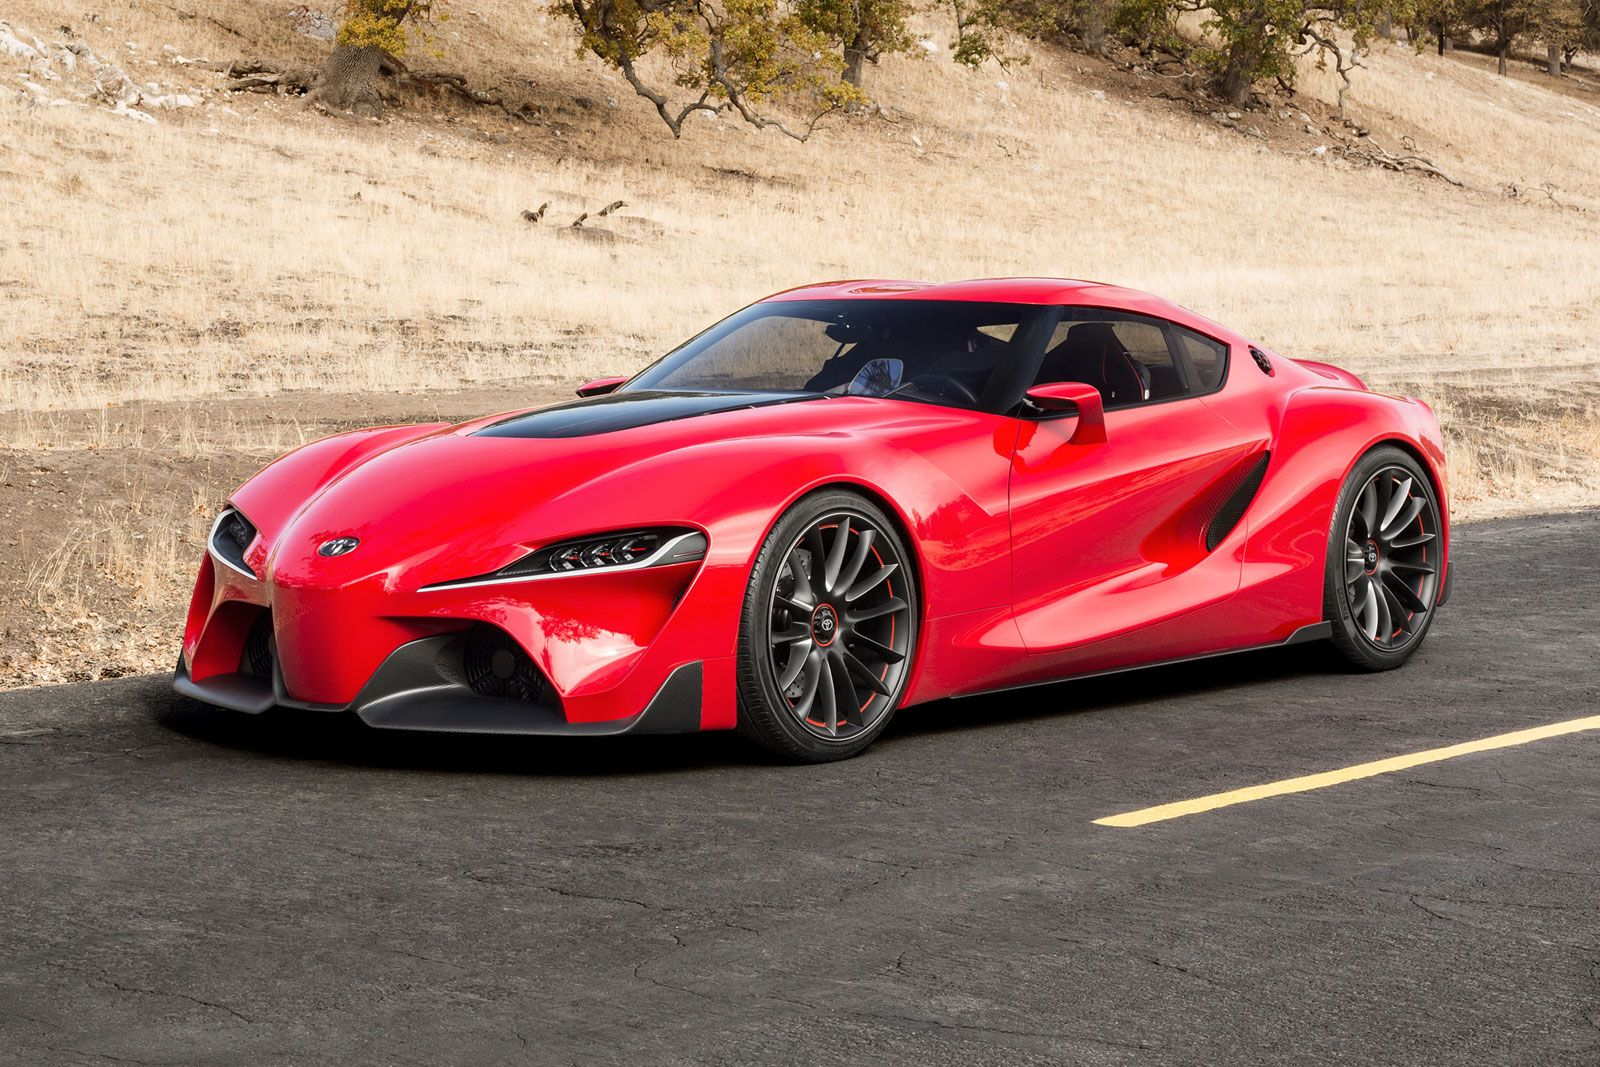 Toyota FT Could This Be The New Supra Hot Wheels Vroom - Toyota ft1 price estimate